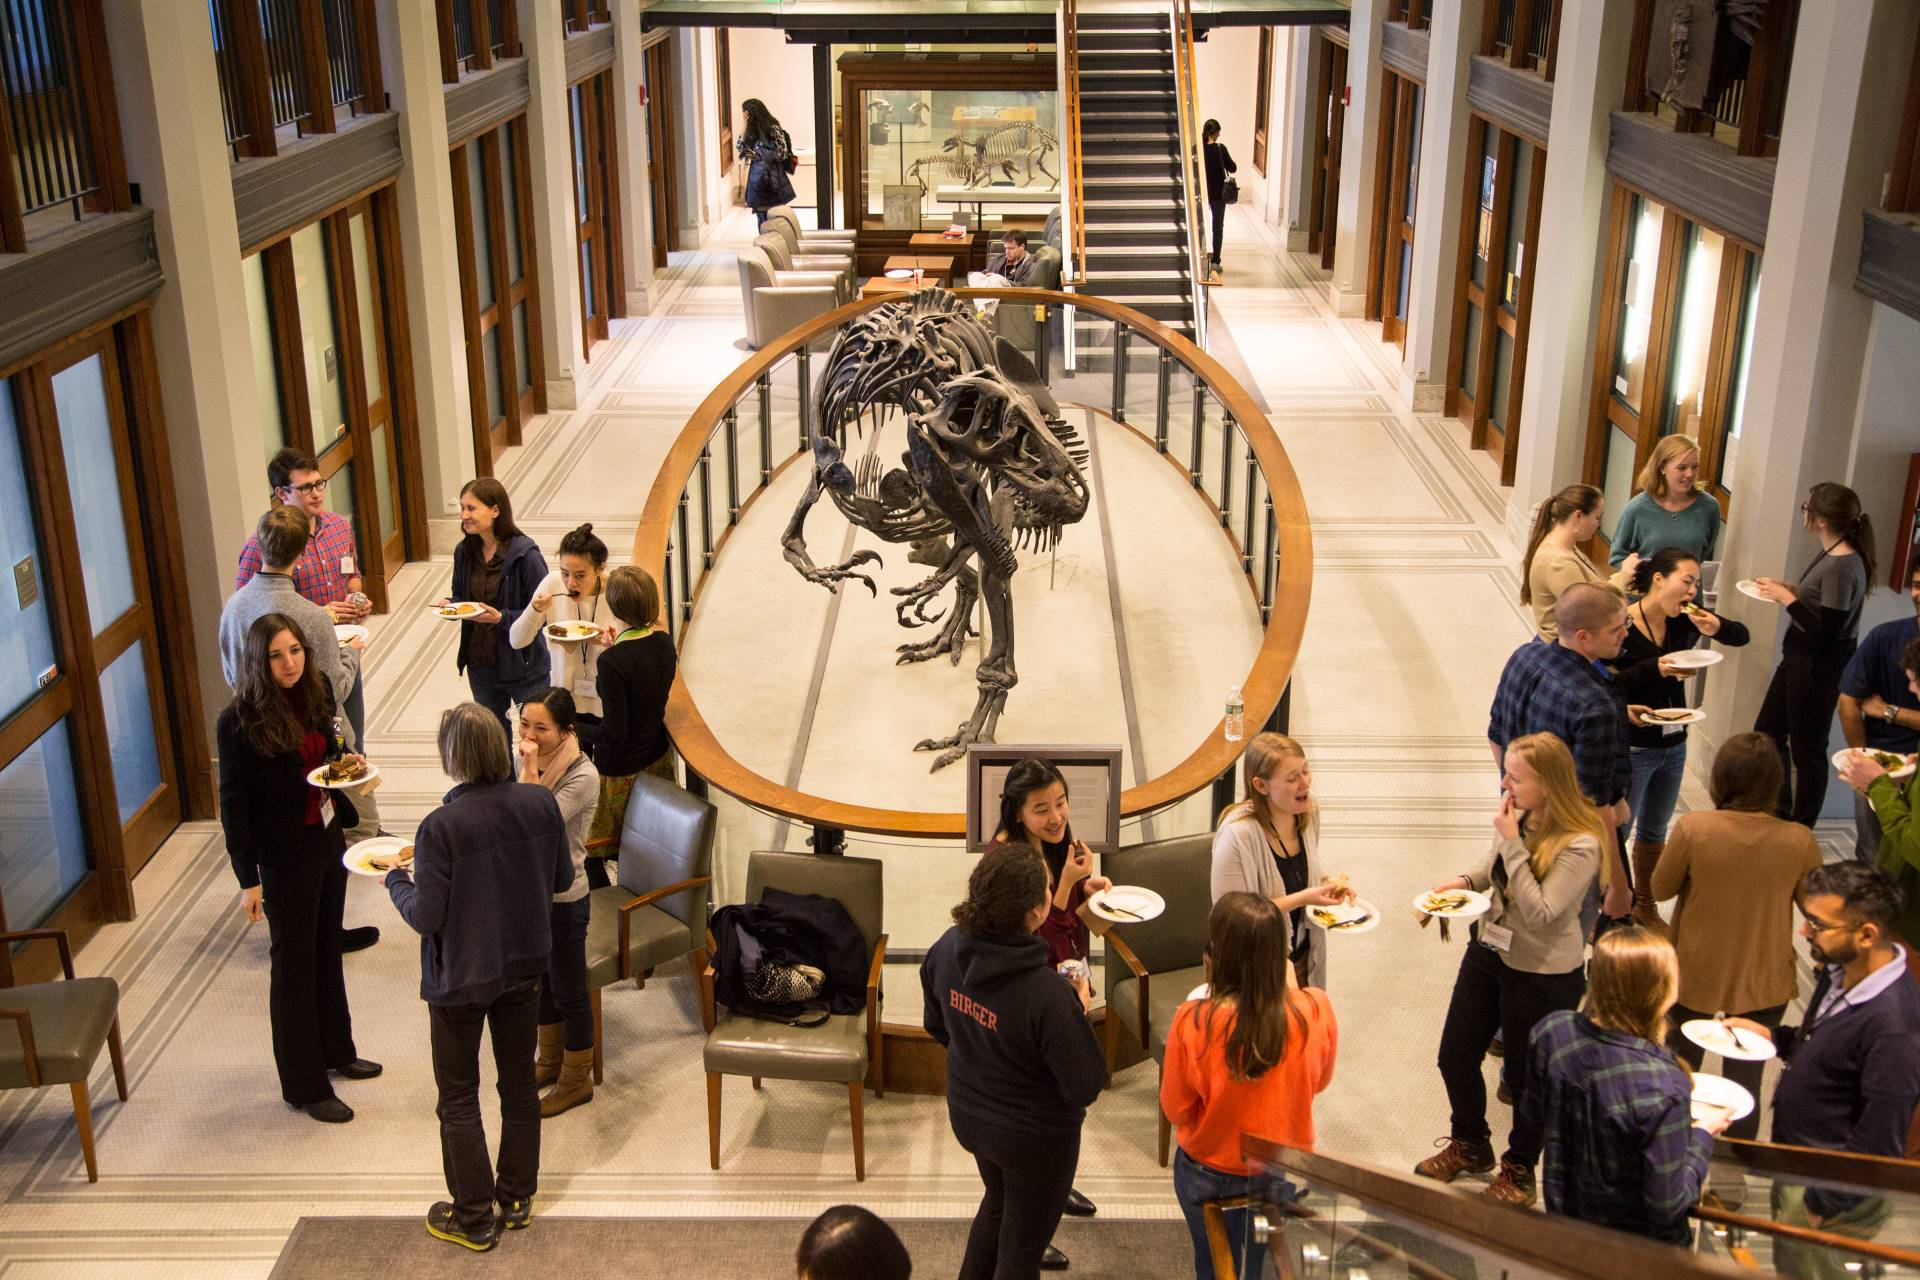 People at an event in the Guyot Hall atrium, in front of the dinosaur skeleton